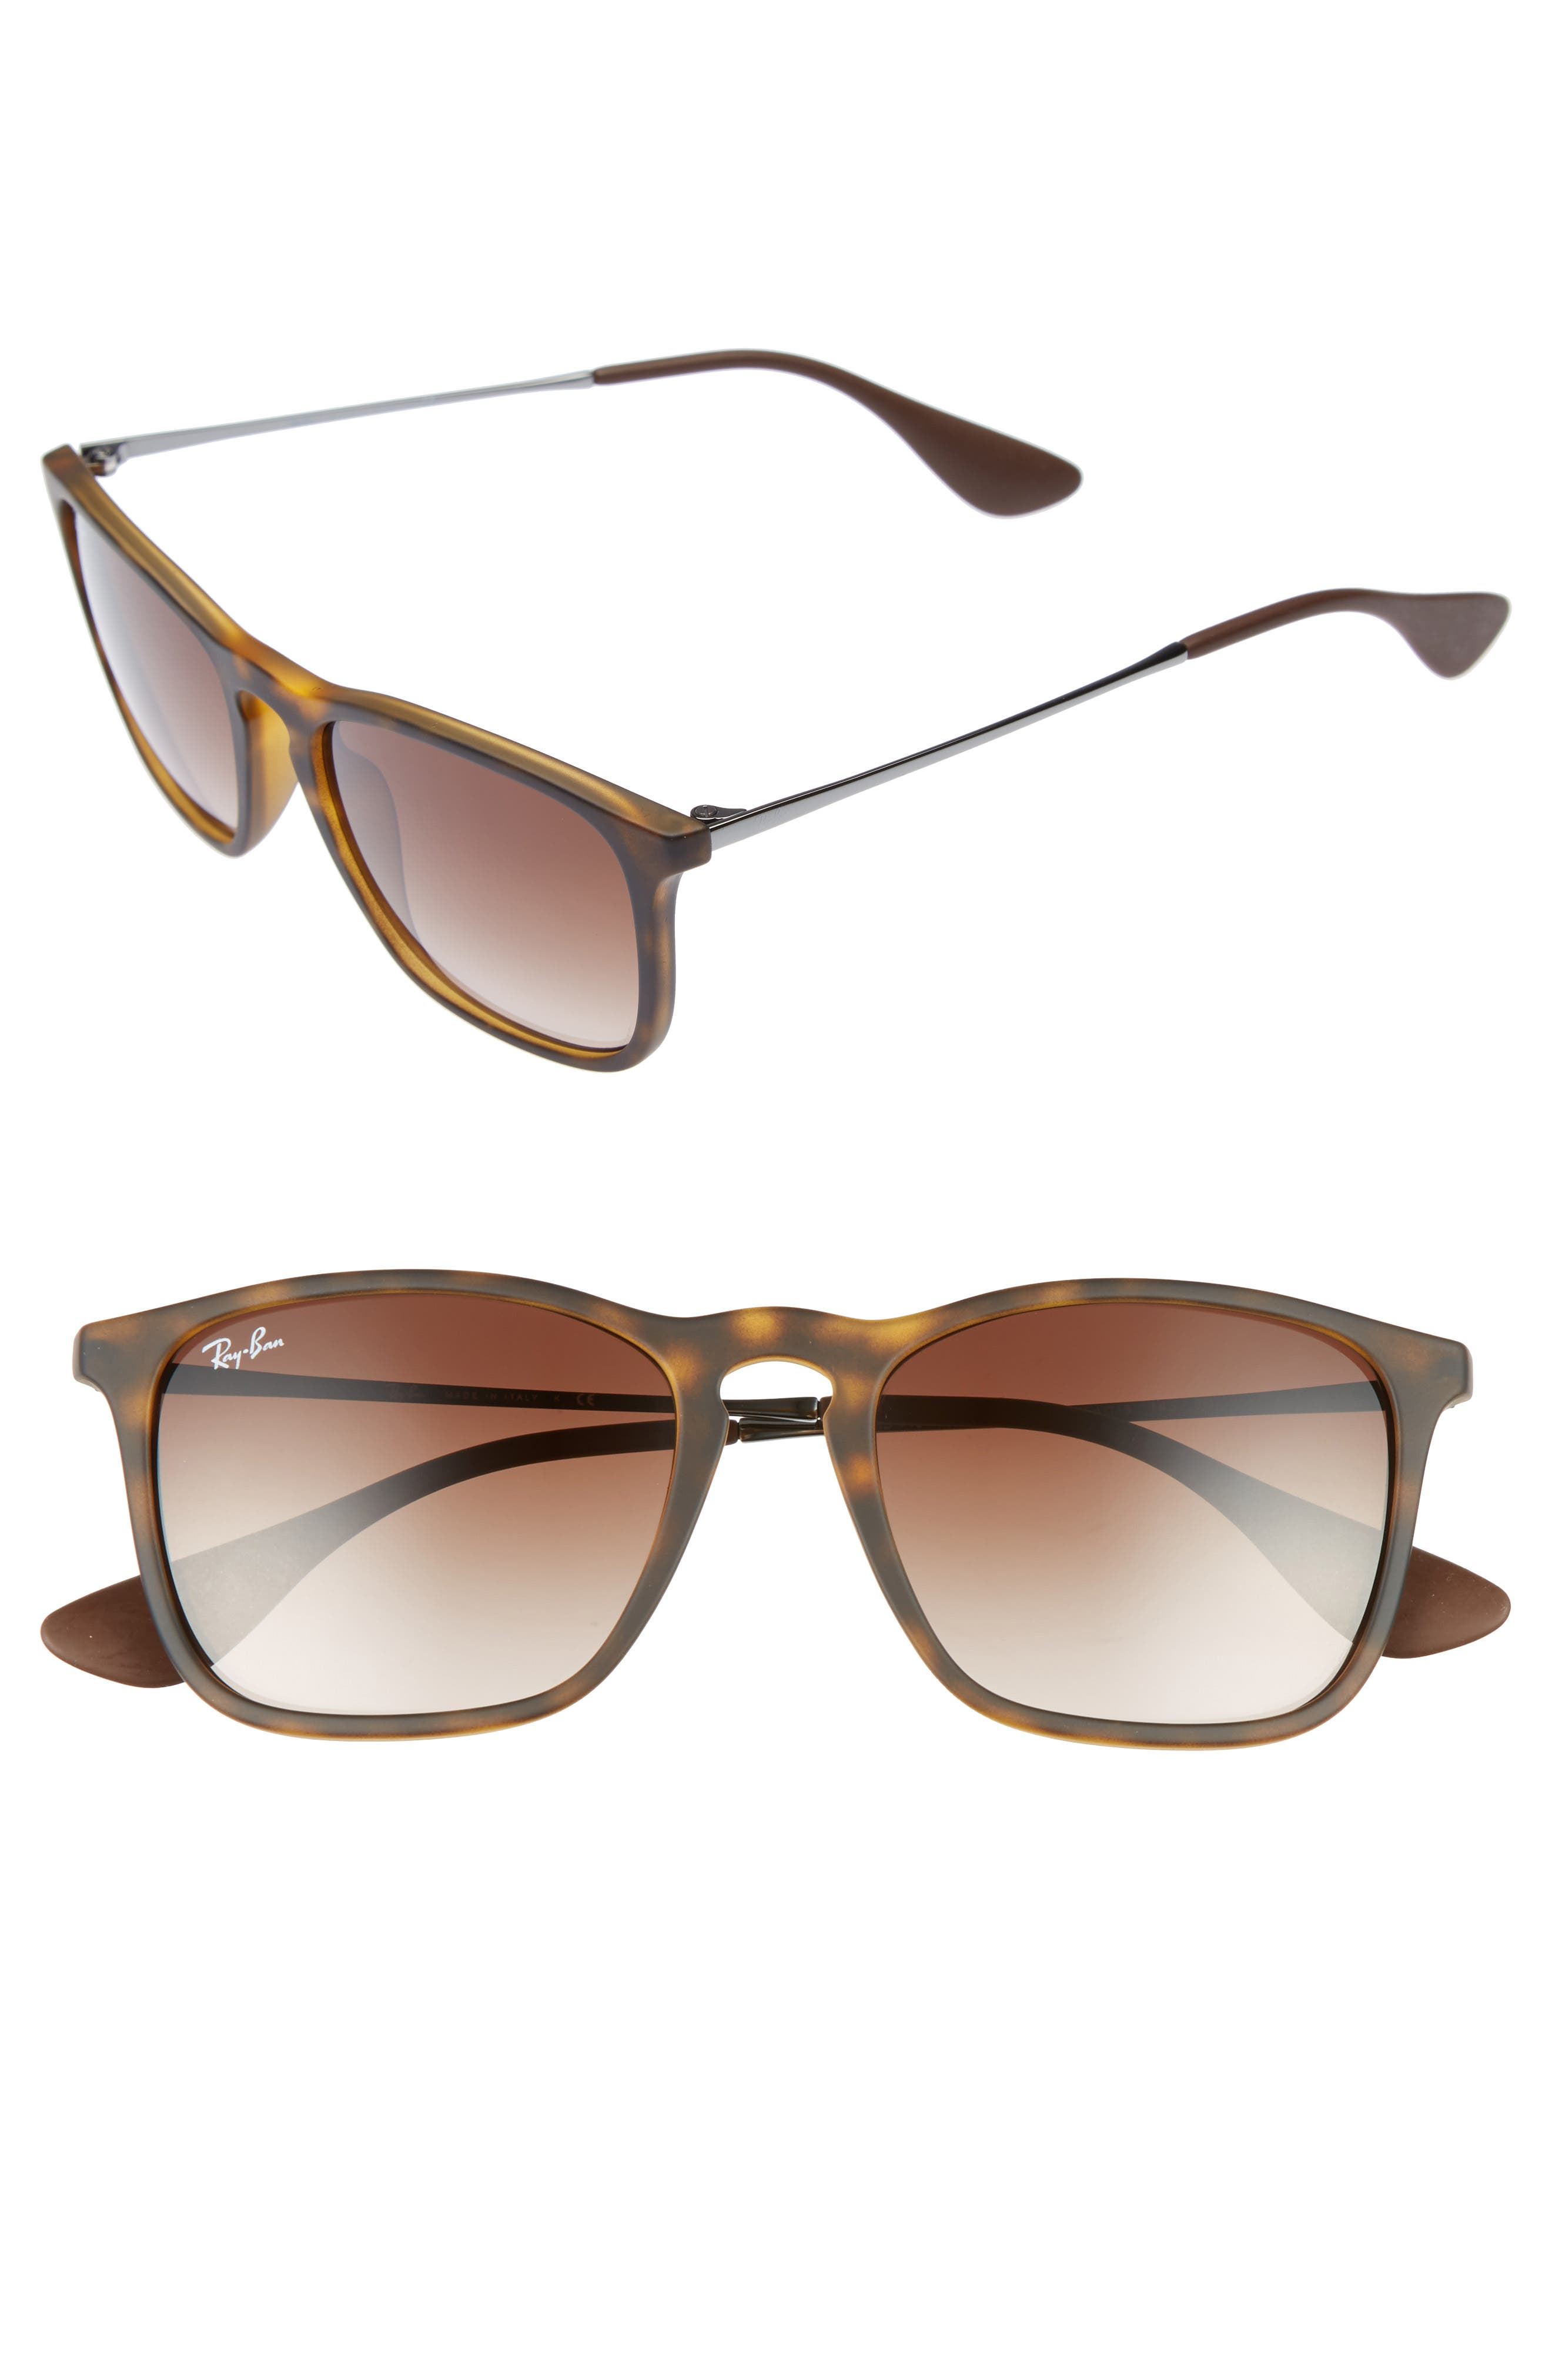 Youngster 54mm Square Keyhole Sunglasses,                             Main thumbnail 1, color,                             BROWN